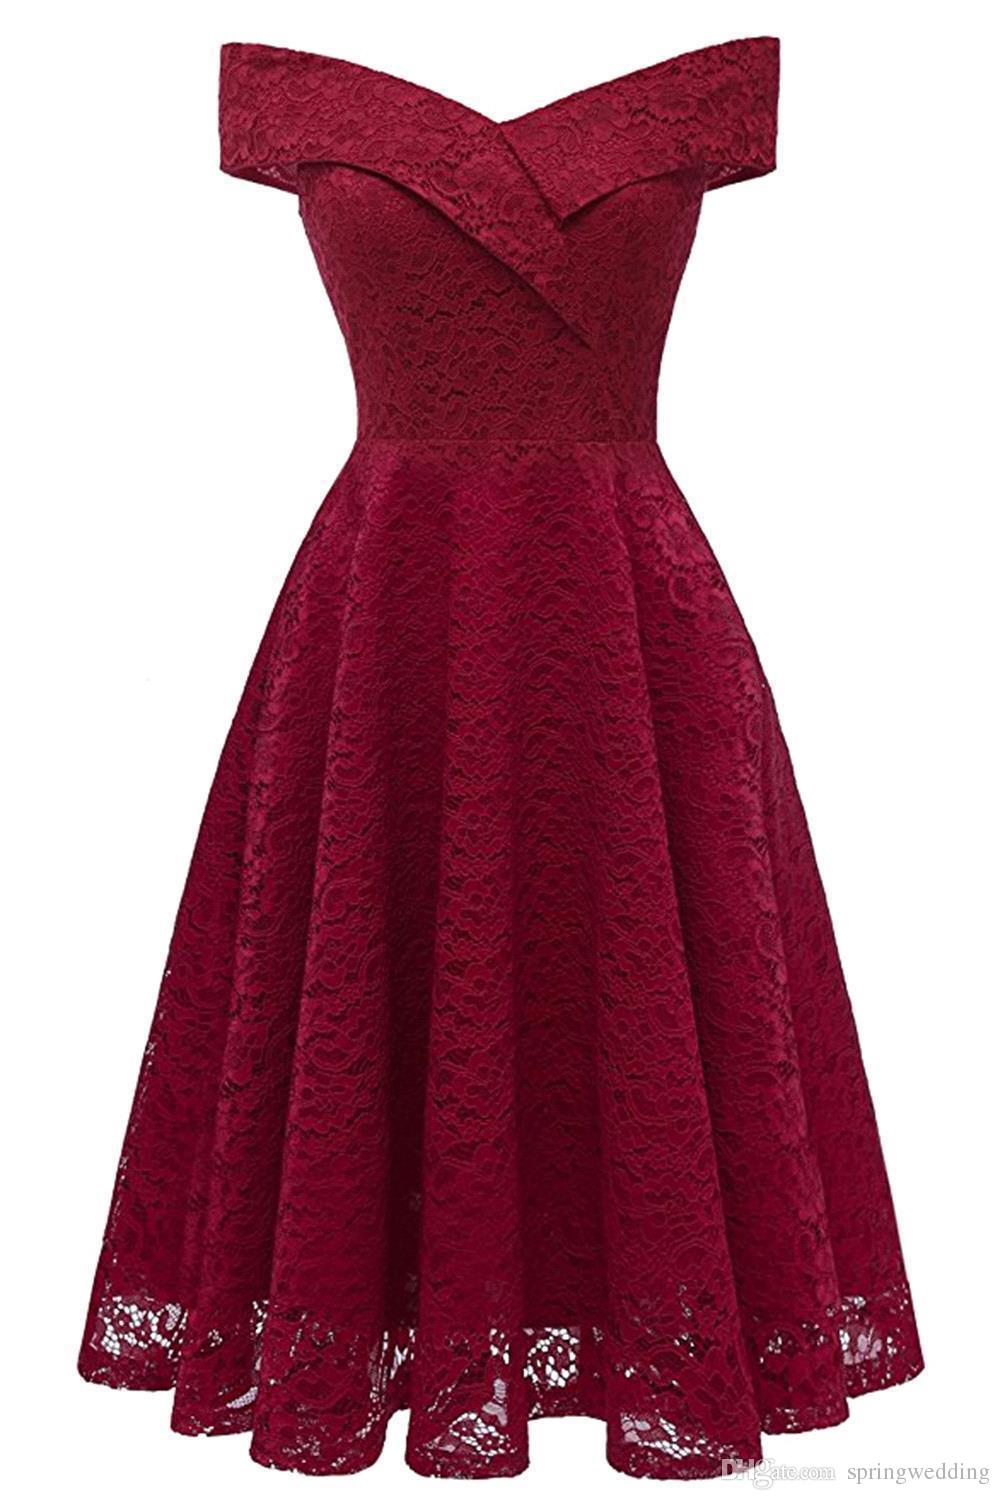 a50c10dcbcae3 Buy Evening & Formal Dresses Online at Overstock | Our Best .